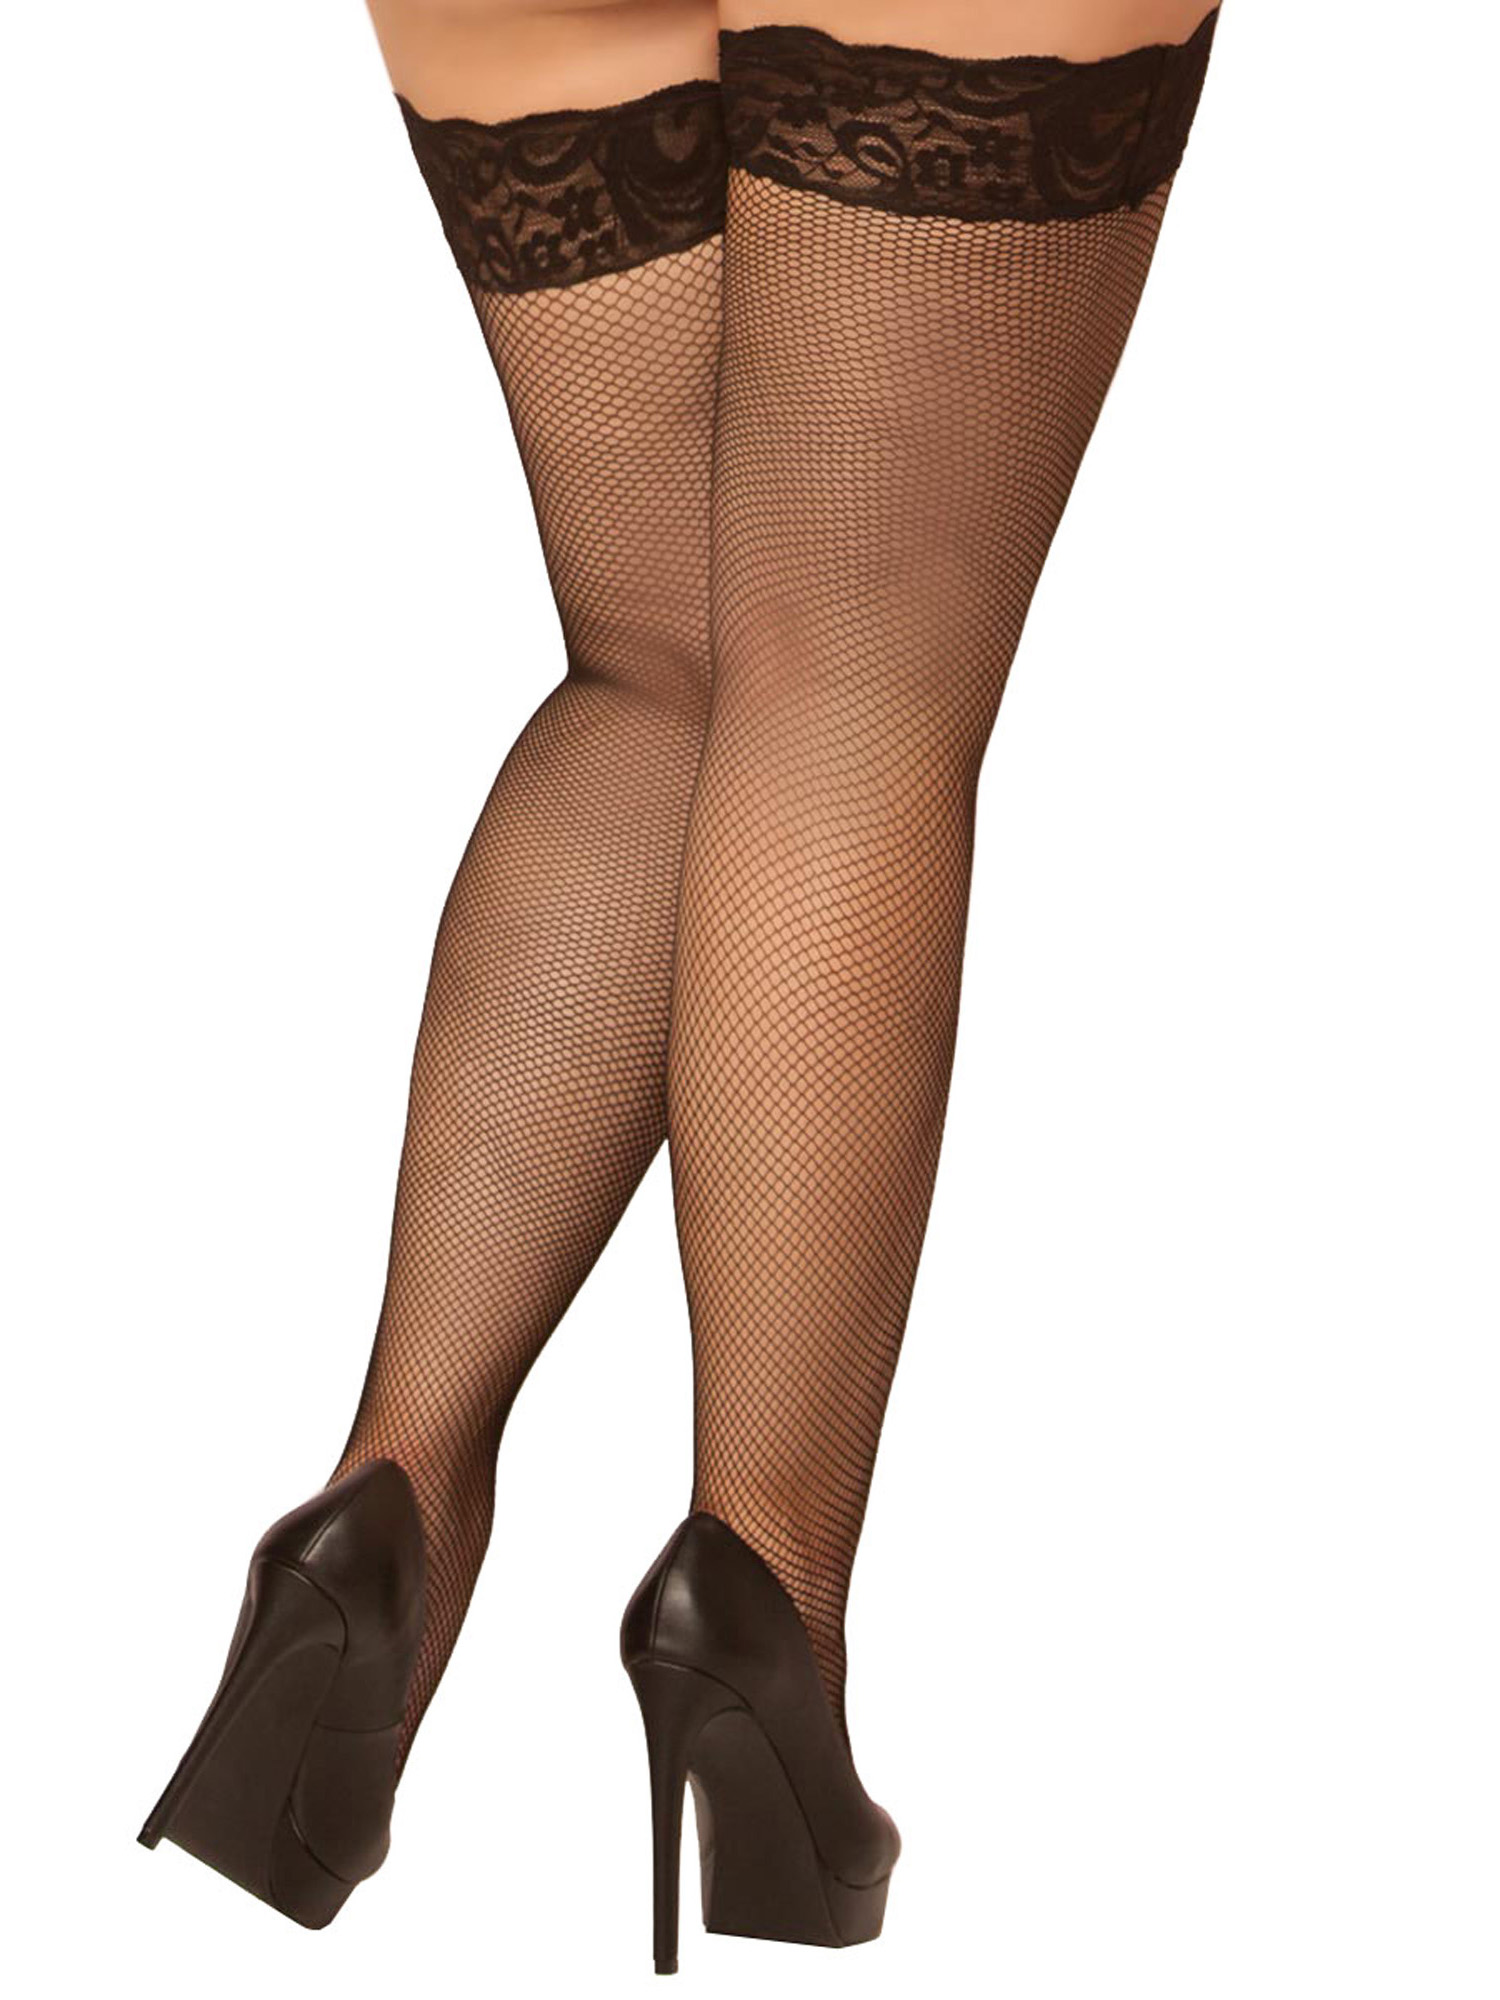 Plus size thigh high pantyhose that